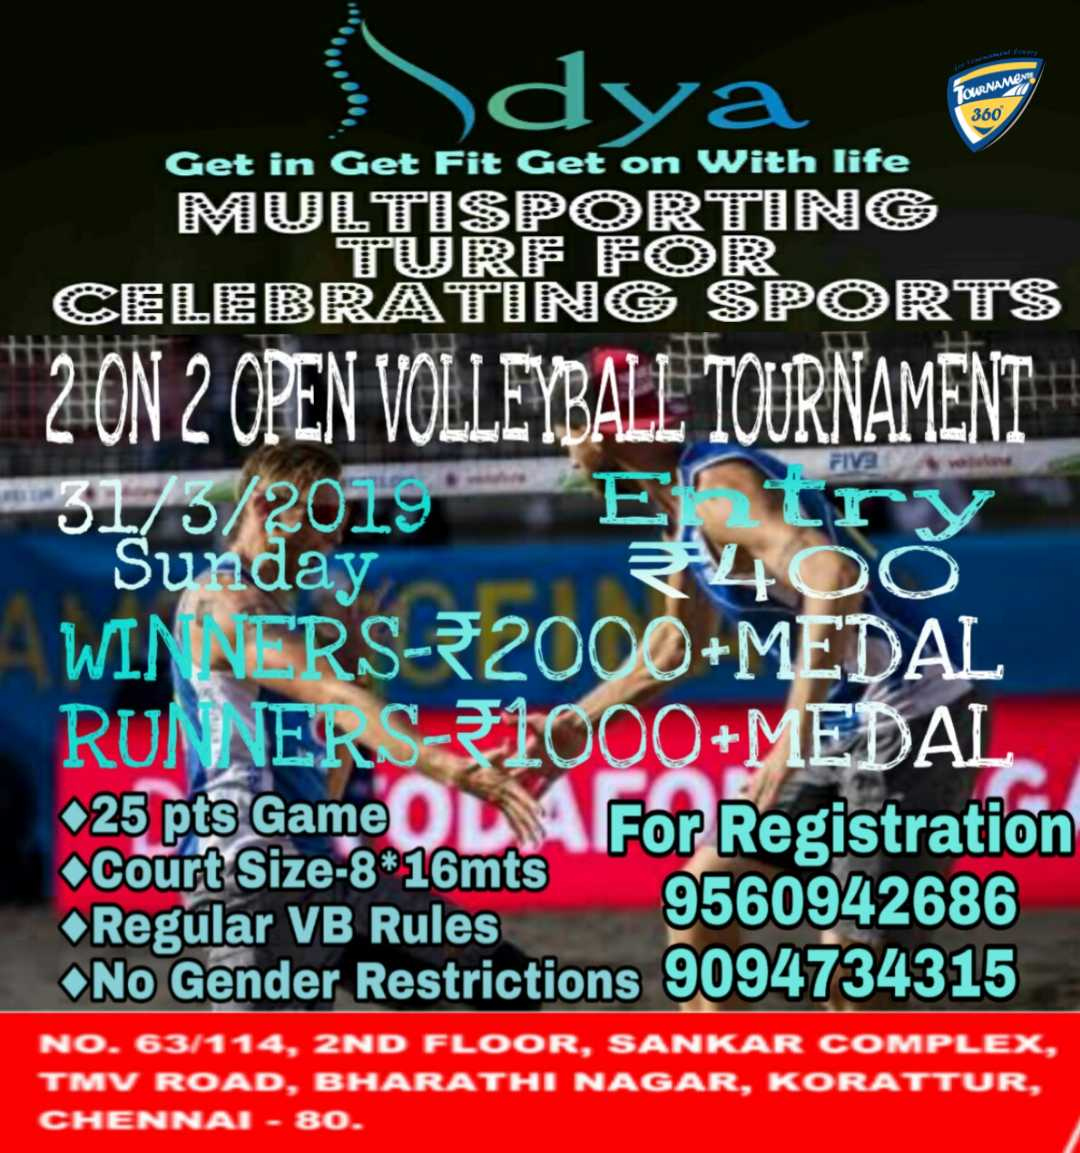 2 on 2 Open Volleyball Tournament